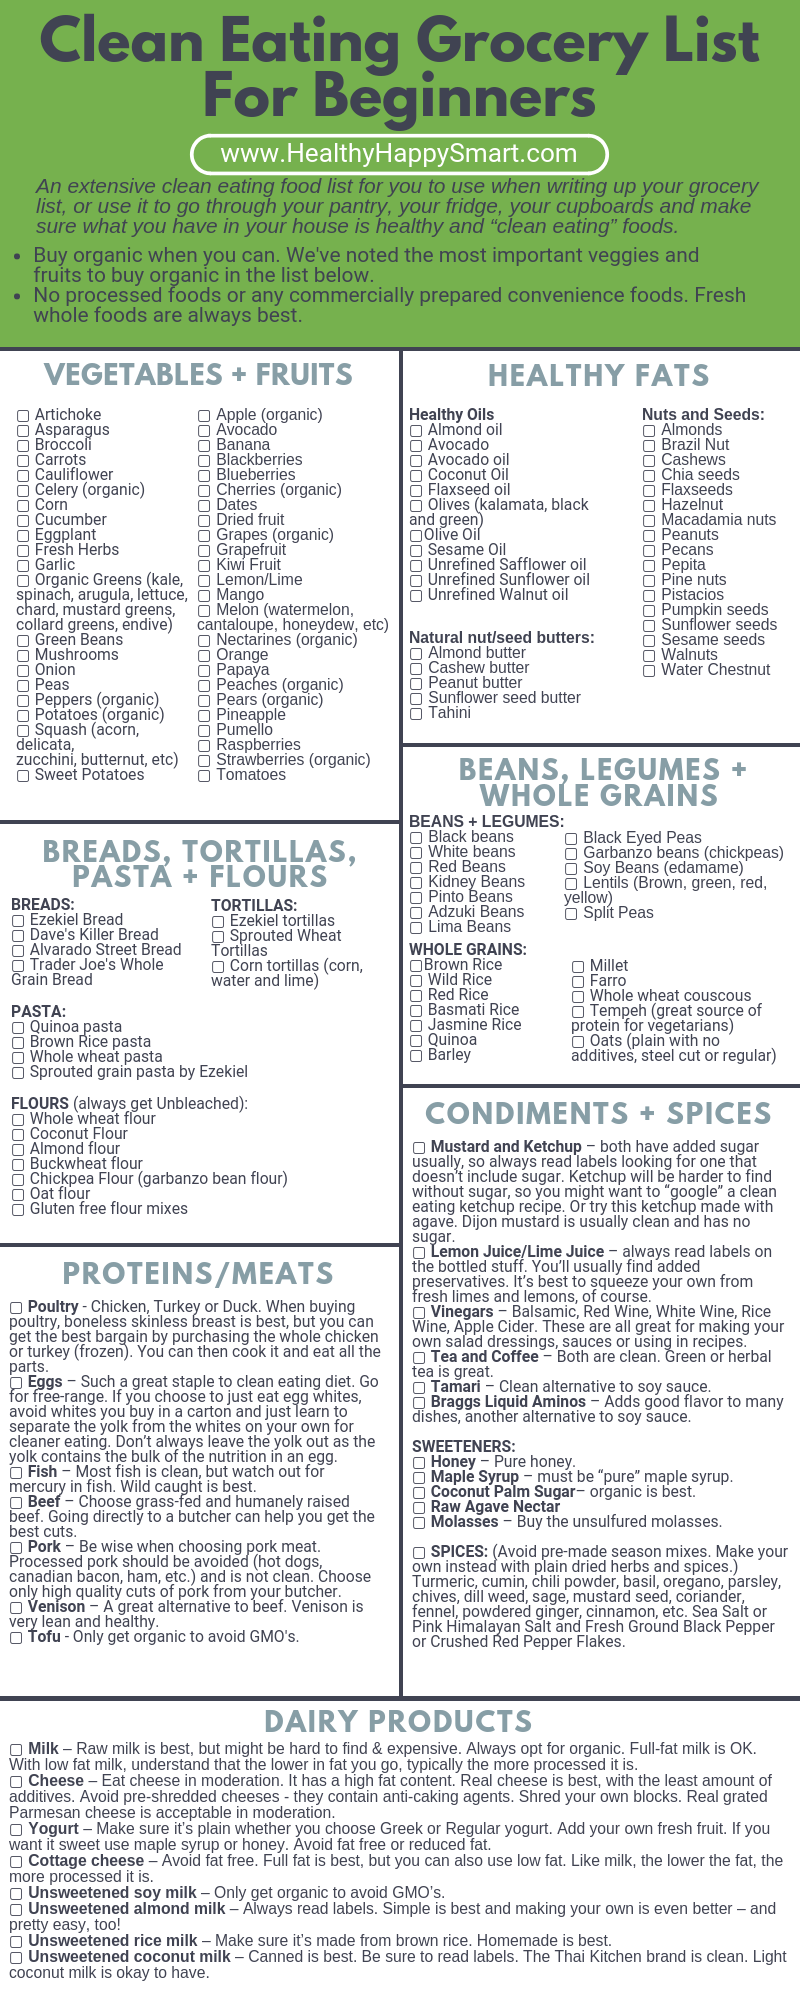 Clean Eating Grocery List • Healthy Food List | HHS